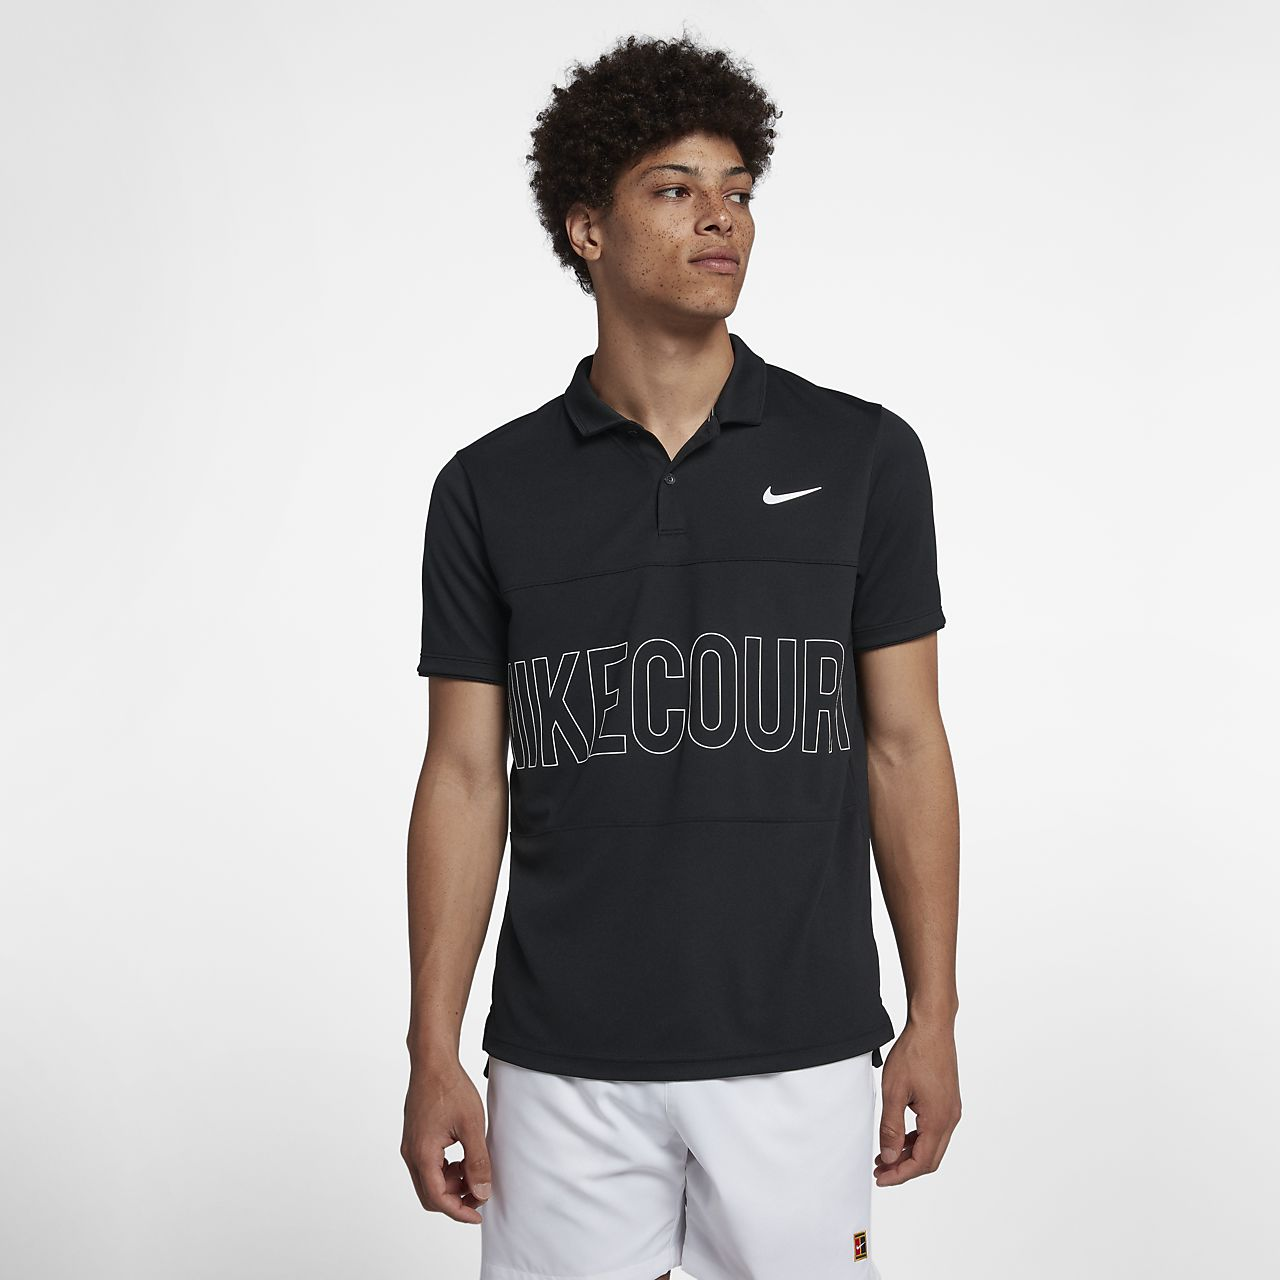 7768dae8 NikeCourt Dri-FIT Men's Graphic Tennis Polo. Nike.com FI